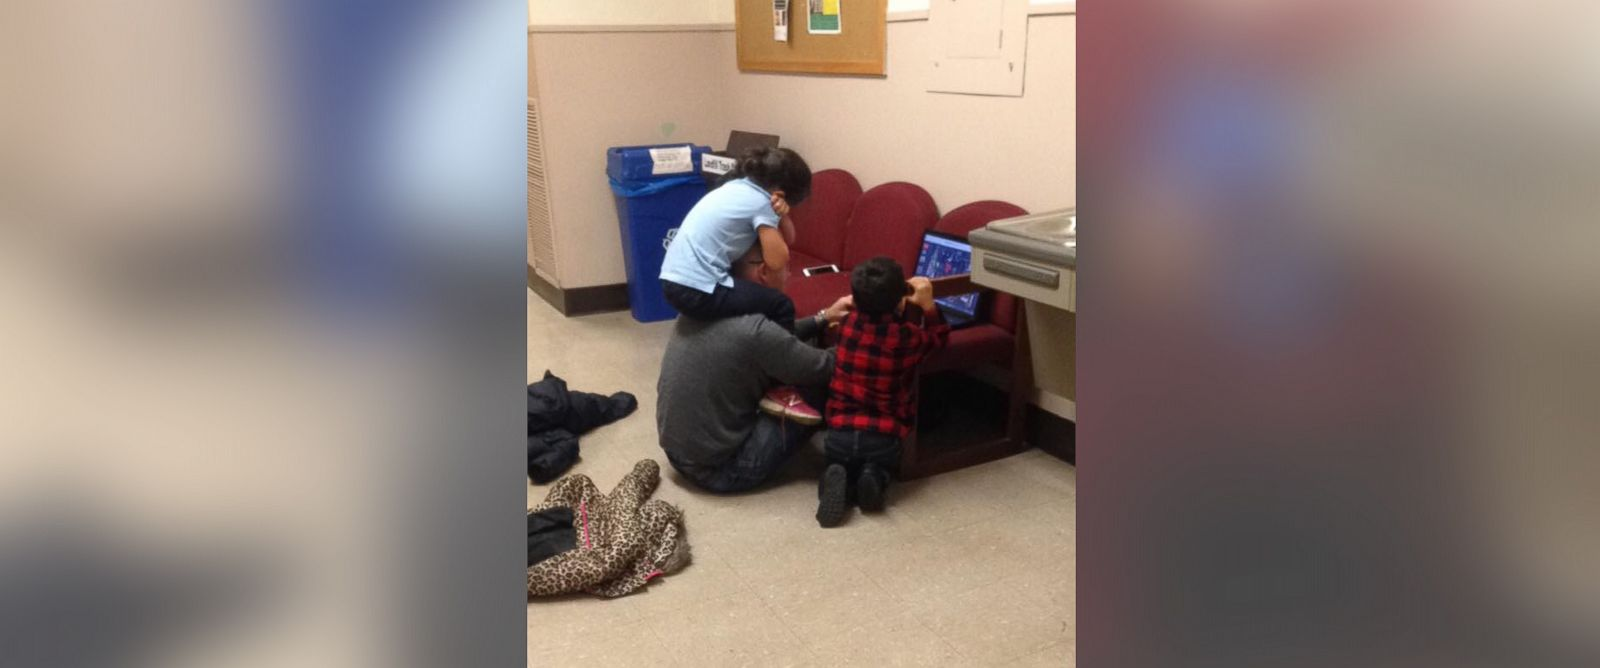 PHOTO: University of Louisville professor Dr. Daniel Krebs offered to watch his student, Monica Willards, children while she took her final exam on Wednesday, Dec. 2, 2015.